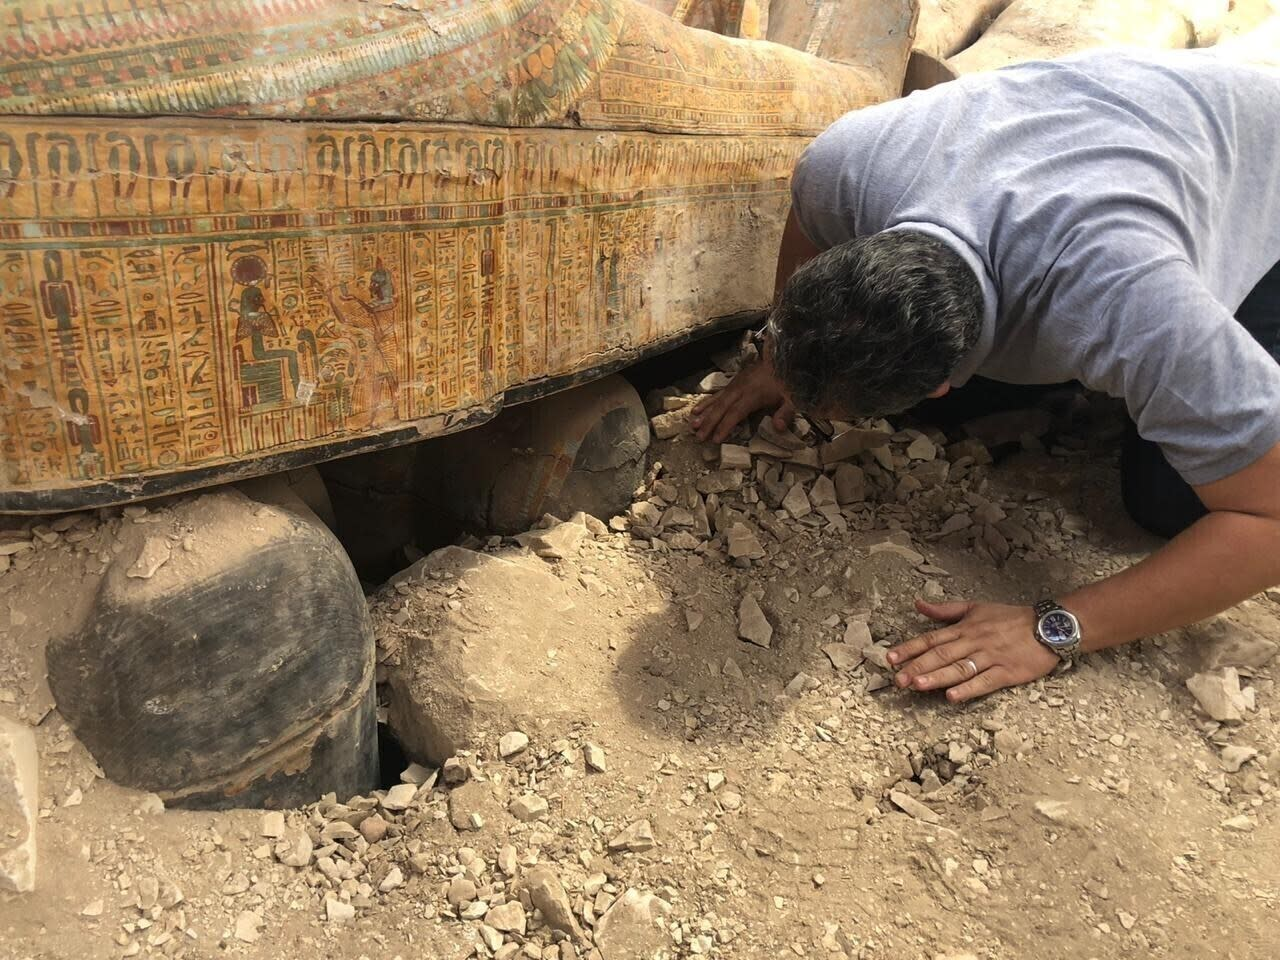 FILE - This Tuesday, Oct. 15, 2019 file photo provided by the Egyptian Ministry of Antiquities shows Egyptian Minister of Antiquities Khaled el-Anany looking at recently discovered ancient colored coffins with inscriptions and paintings, in the southern city of Luxor, Egypt. (Egyptian Ministry of Antiquities via AP, File)